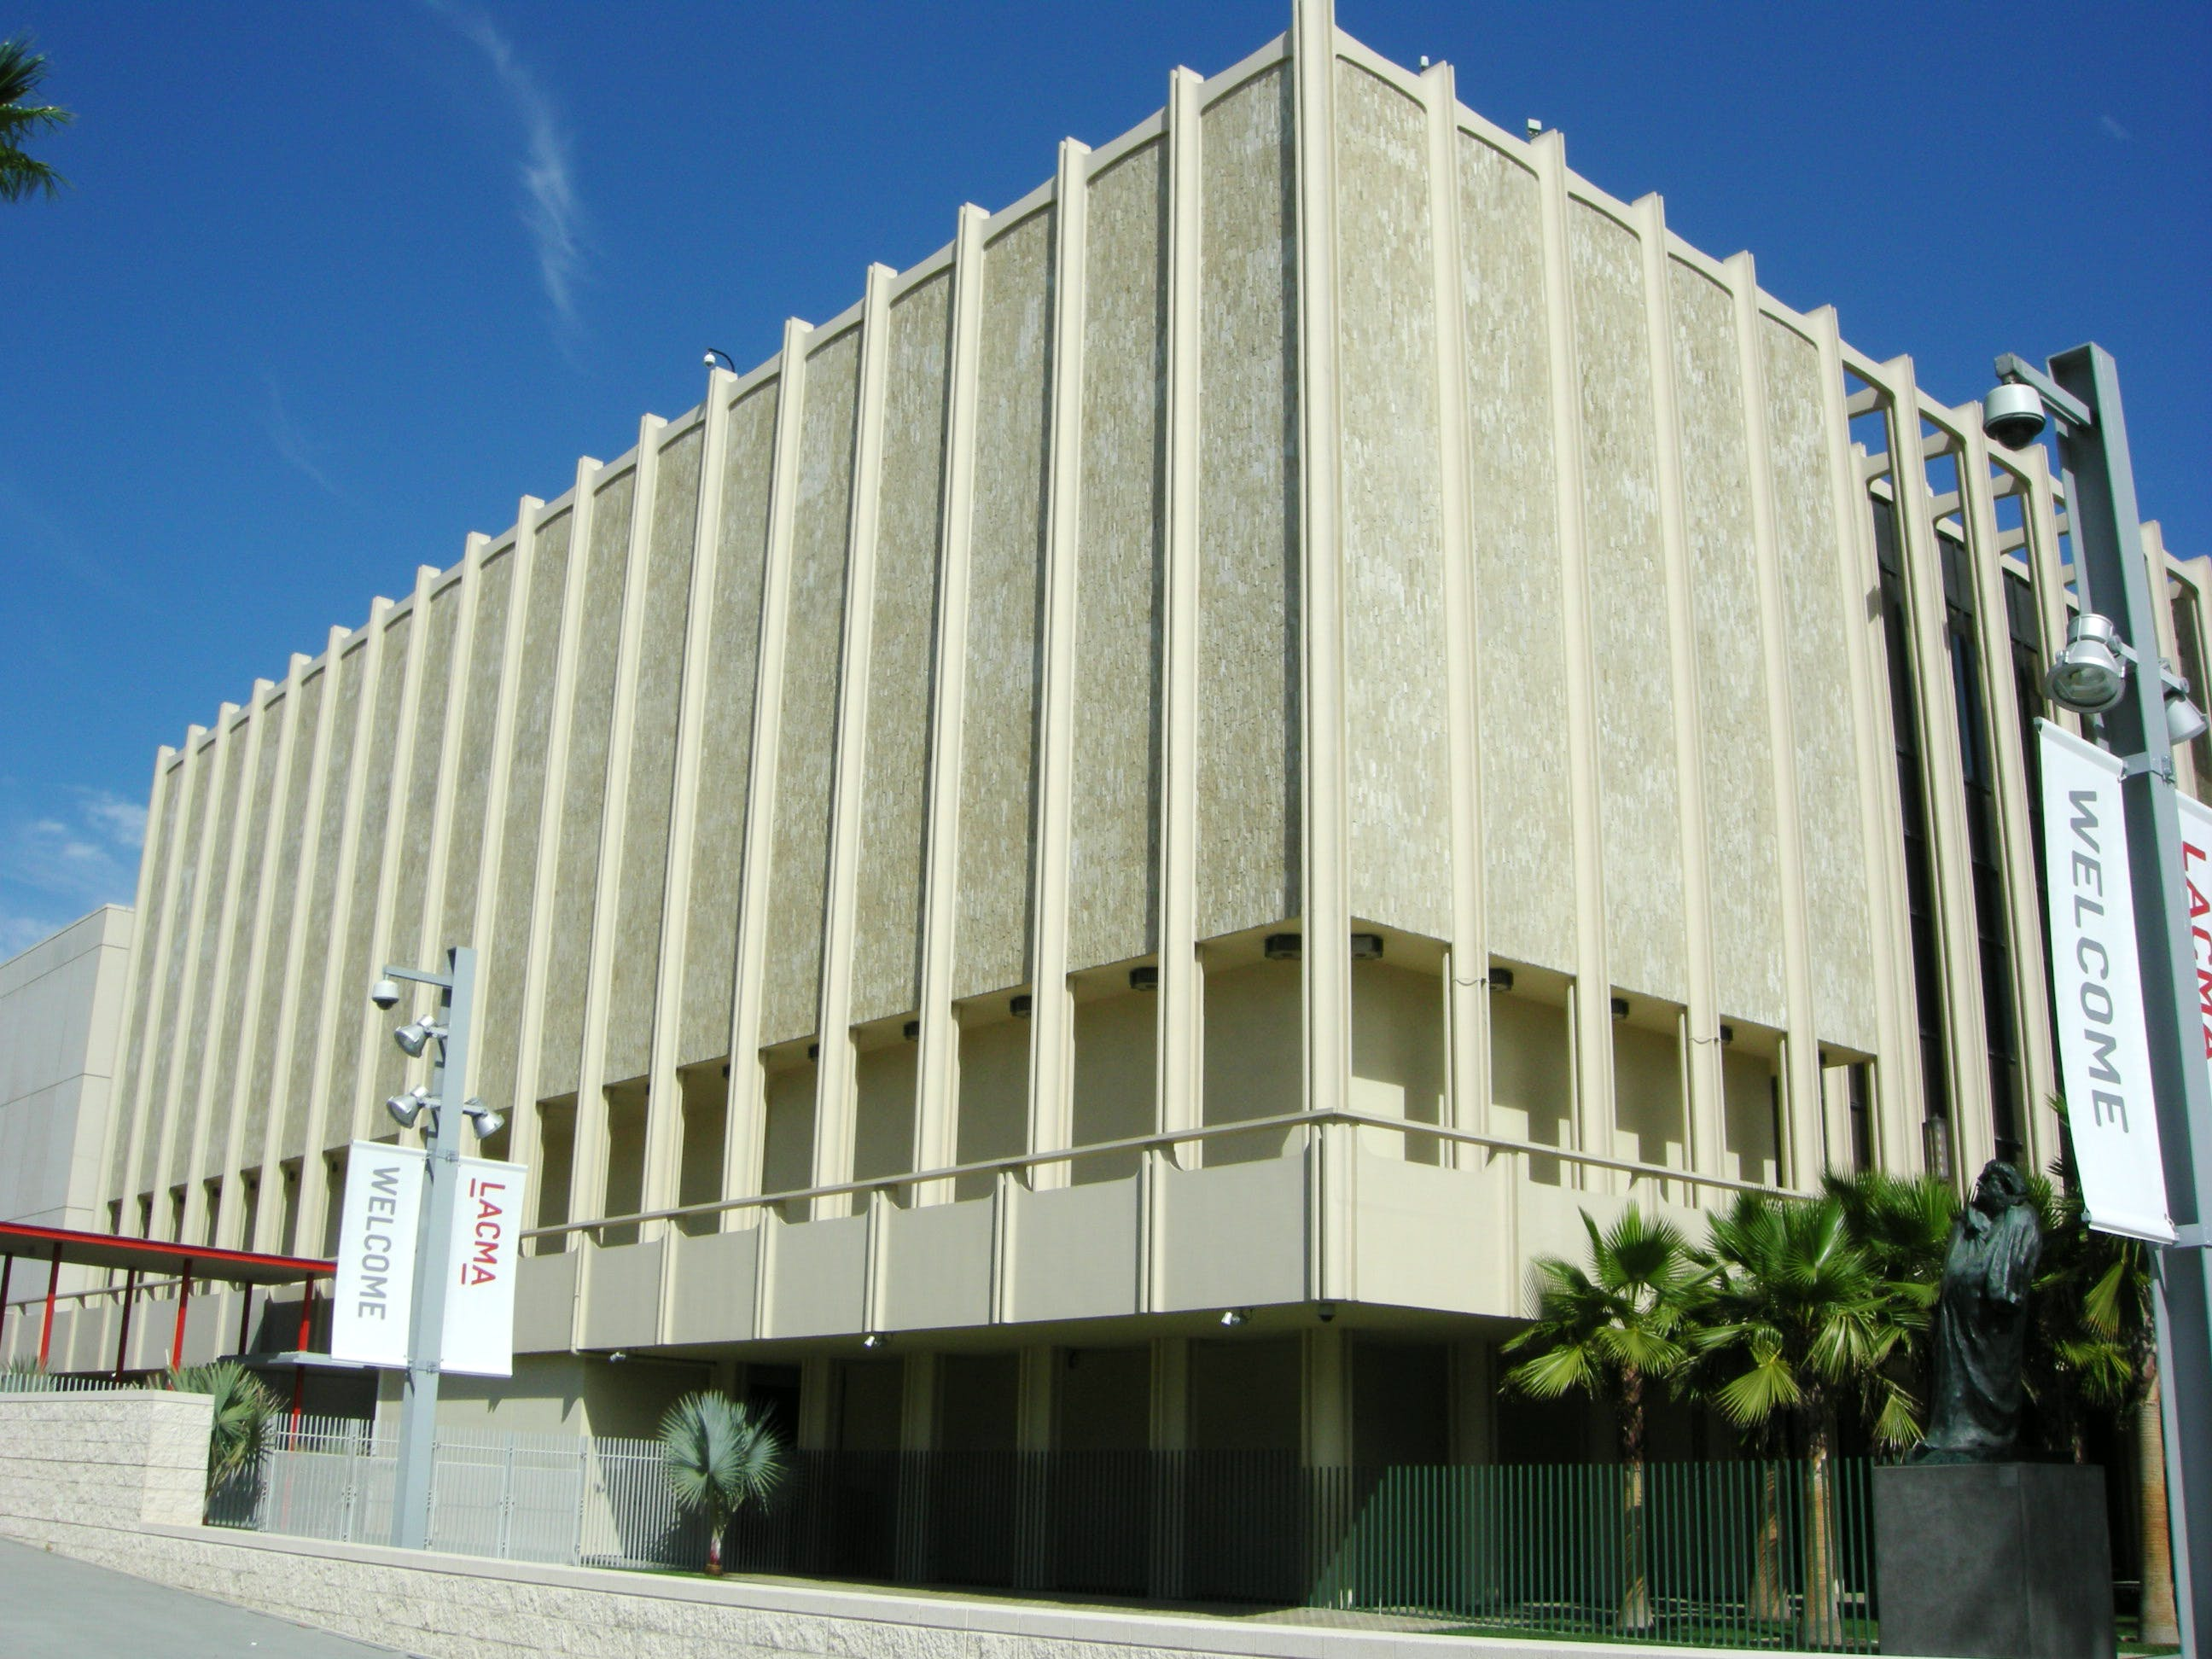 One of the original 1965 buildings of the Los Angeles County Museum of Art.